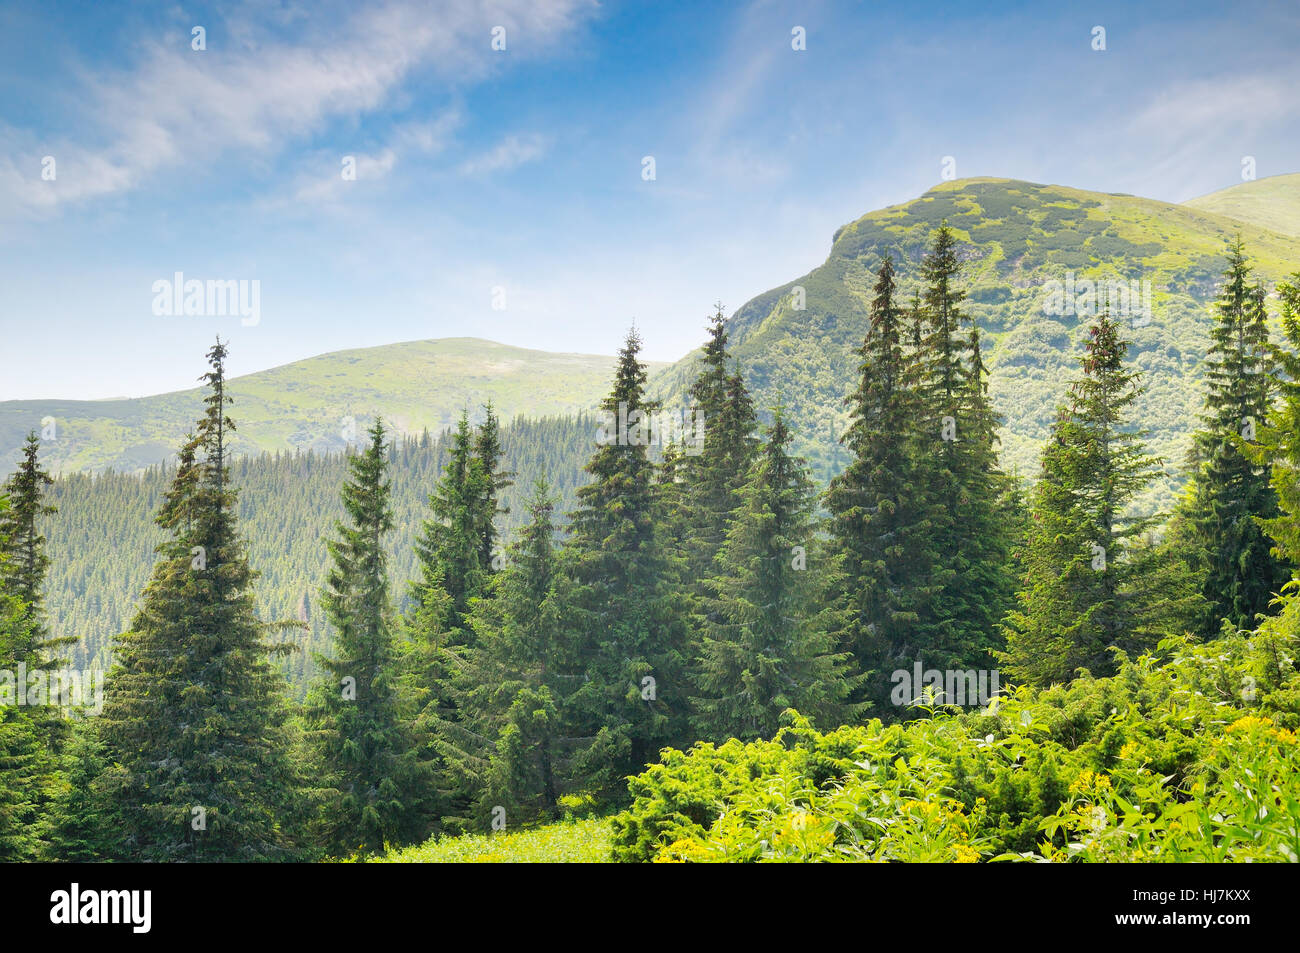 spruce forest on the hillside - Stock Image